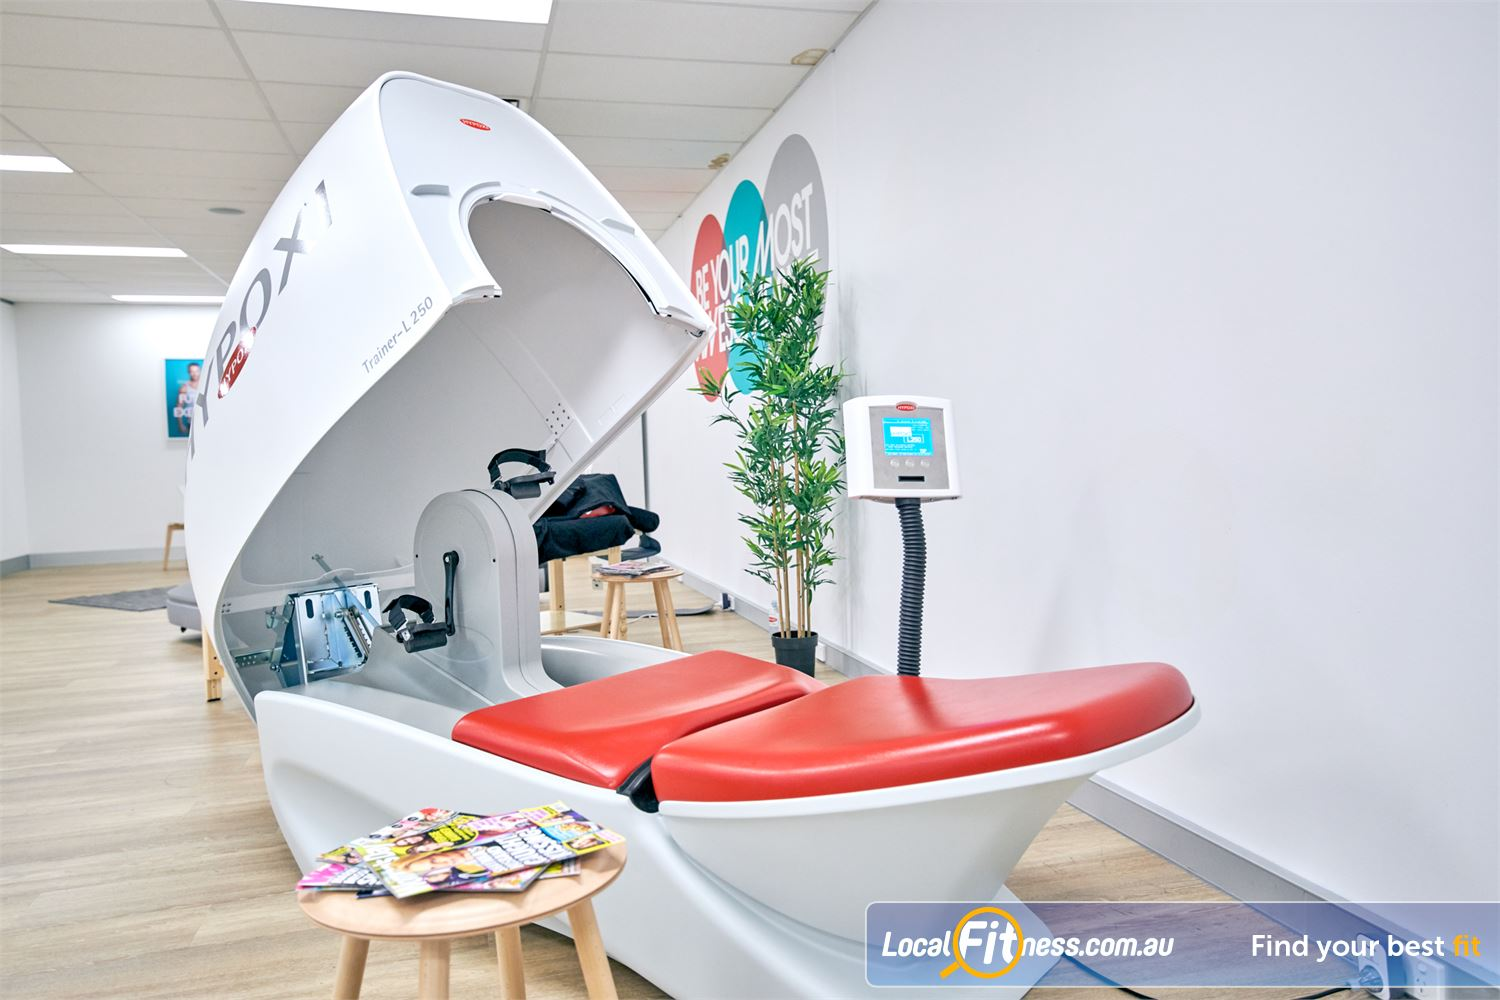 HYPOXI Weight Loss Westbourne Park Our HYPOXI machine works by artificially stimulating your blood supply to the fat around the stomach.<br />